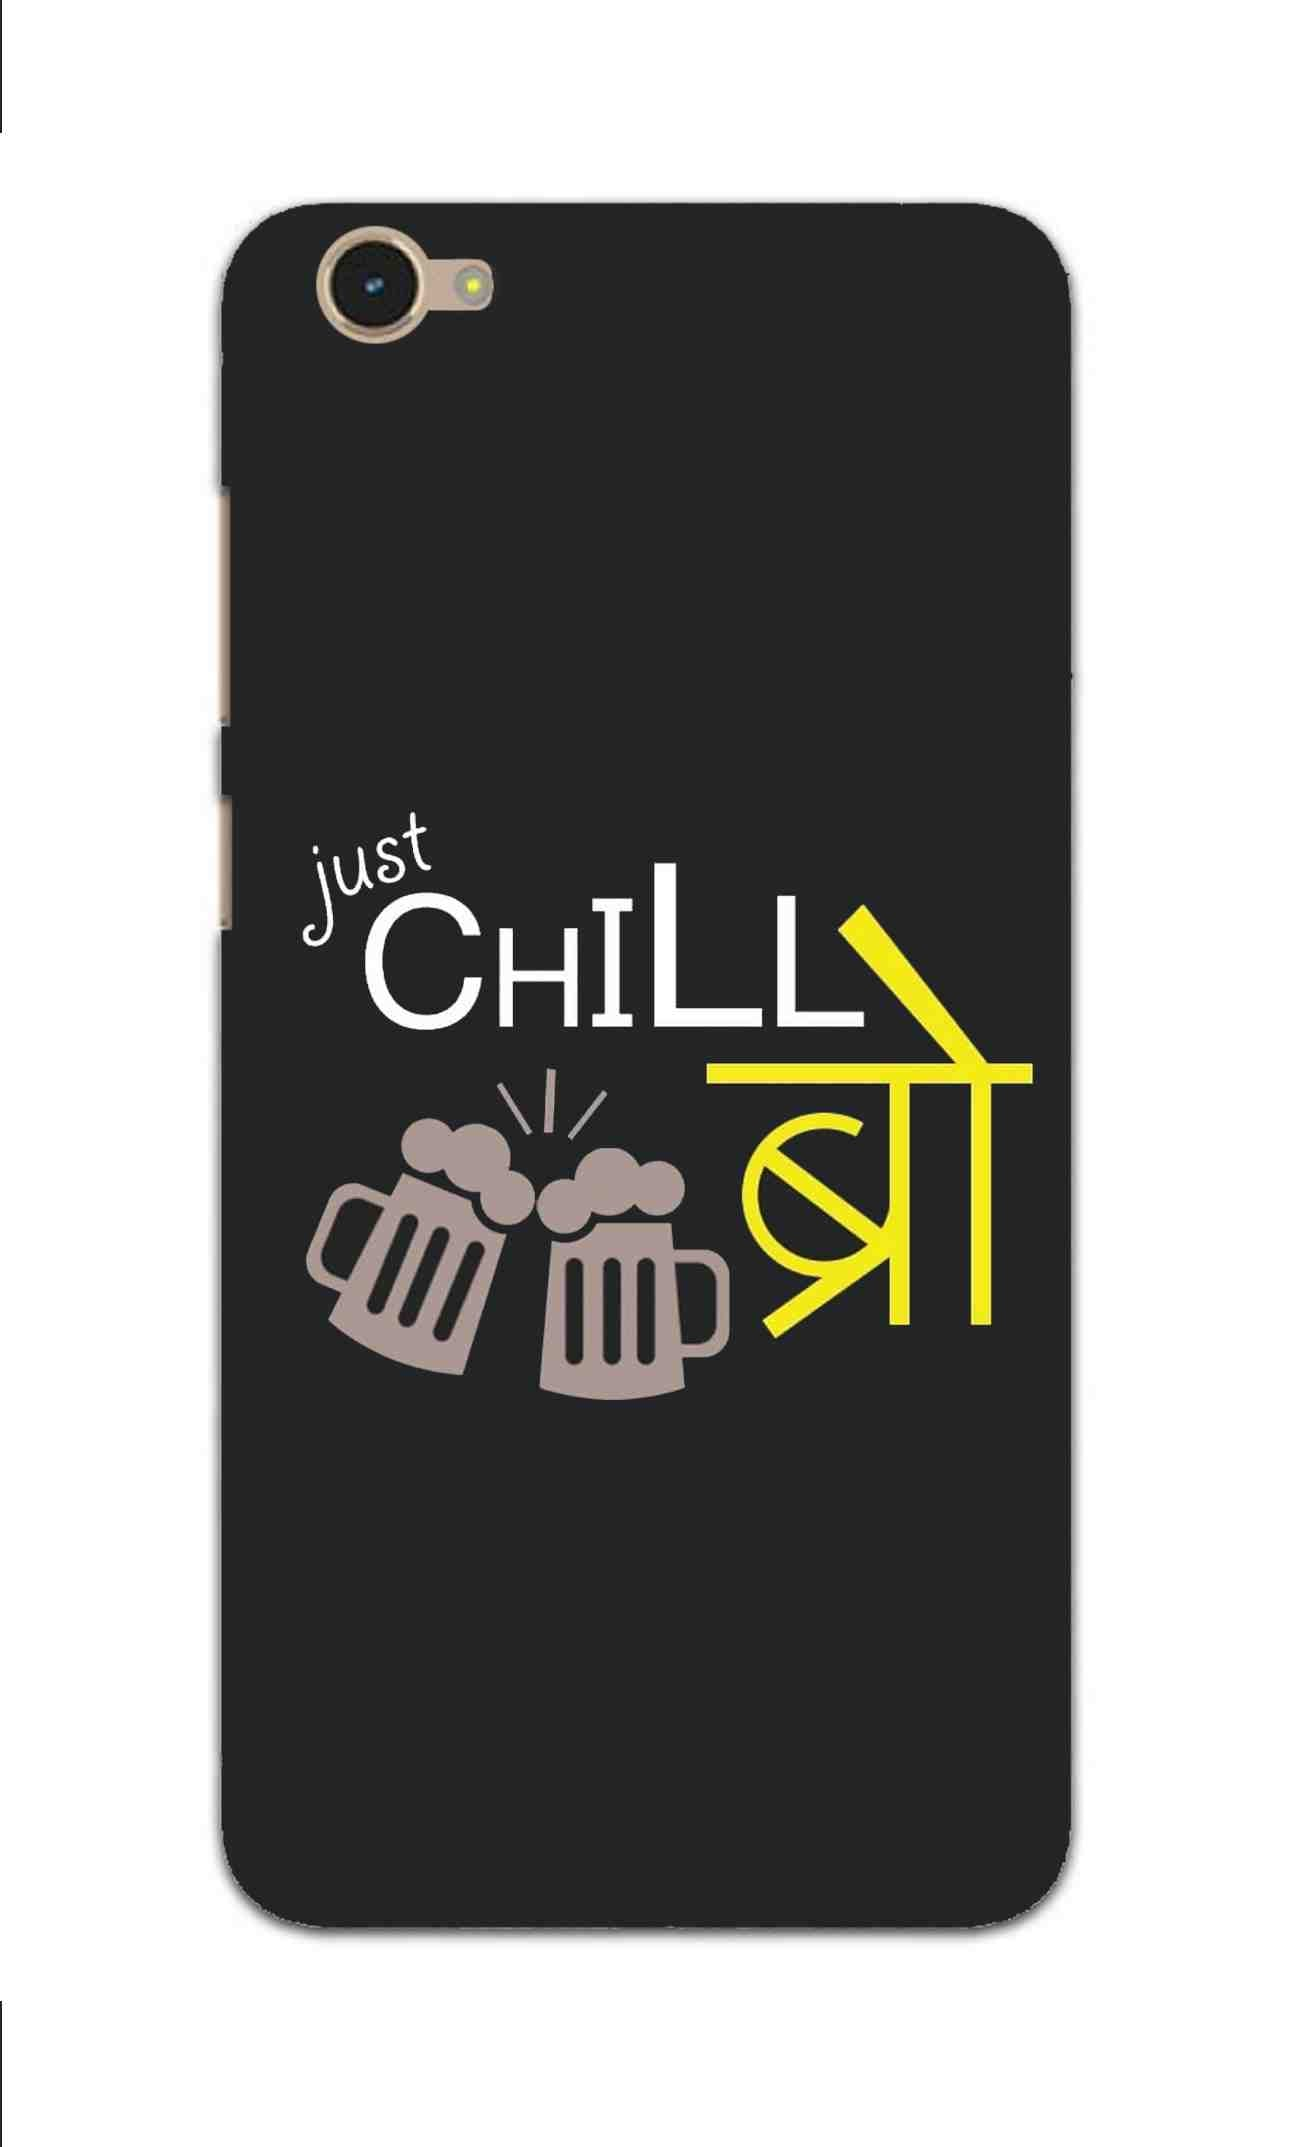 Just Chill Bro Typography Vivo V5 Mobile Cover Case - MADANYU